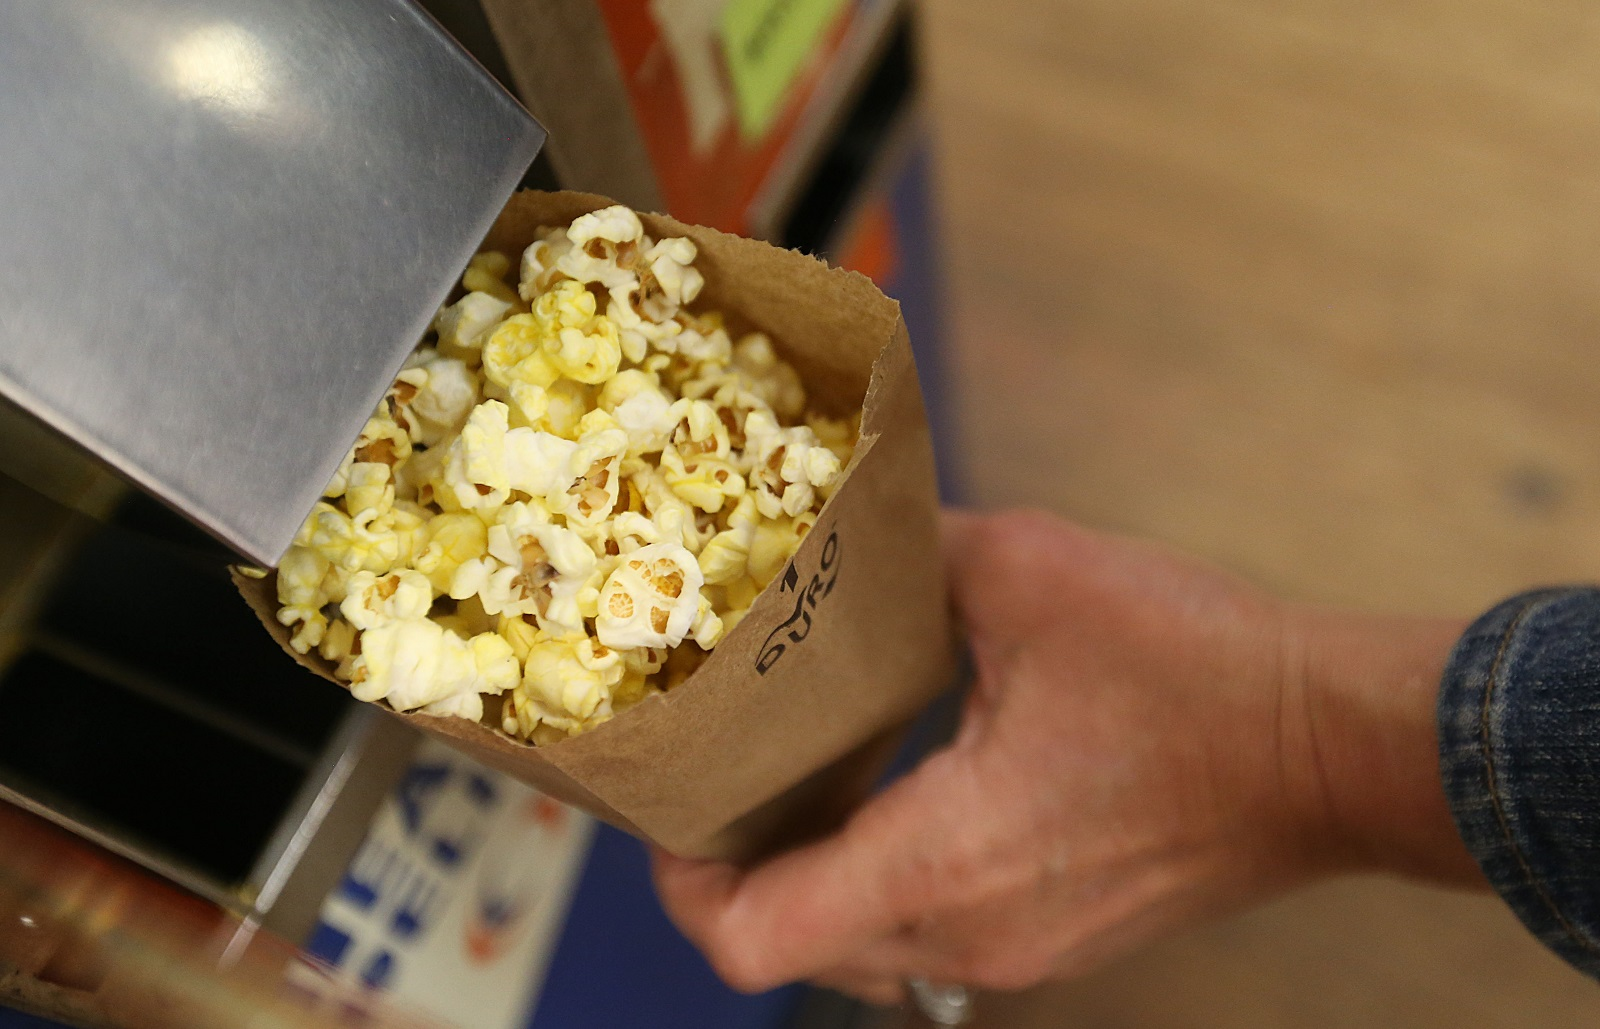 One of the highlights for Vidler's customers is the popcorn machine where one can purchase a small bag for a dime. (Sharon Cantillon/Buffalo News)